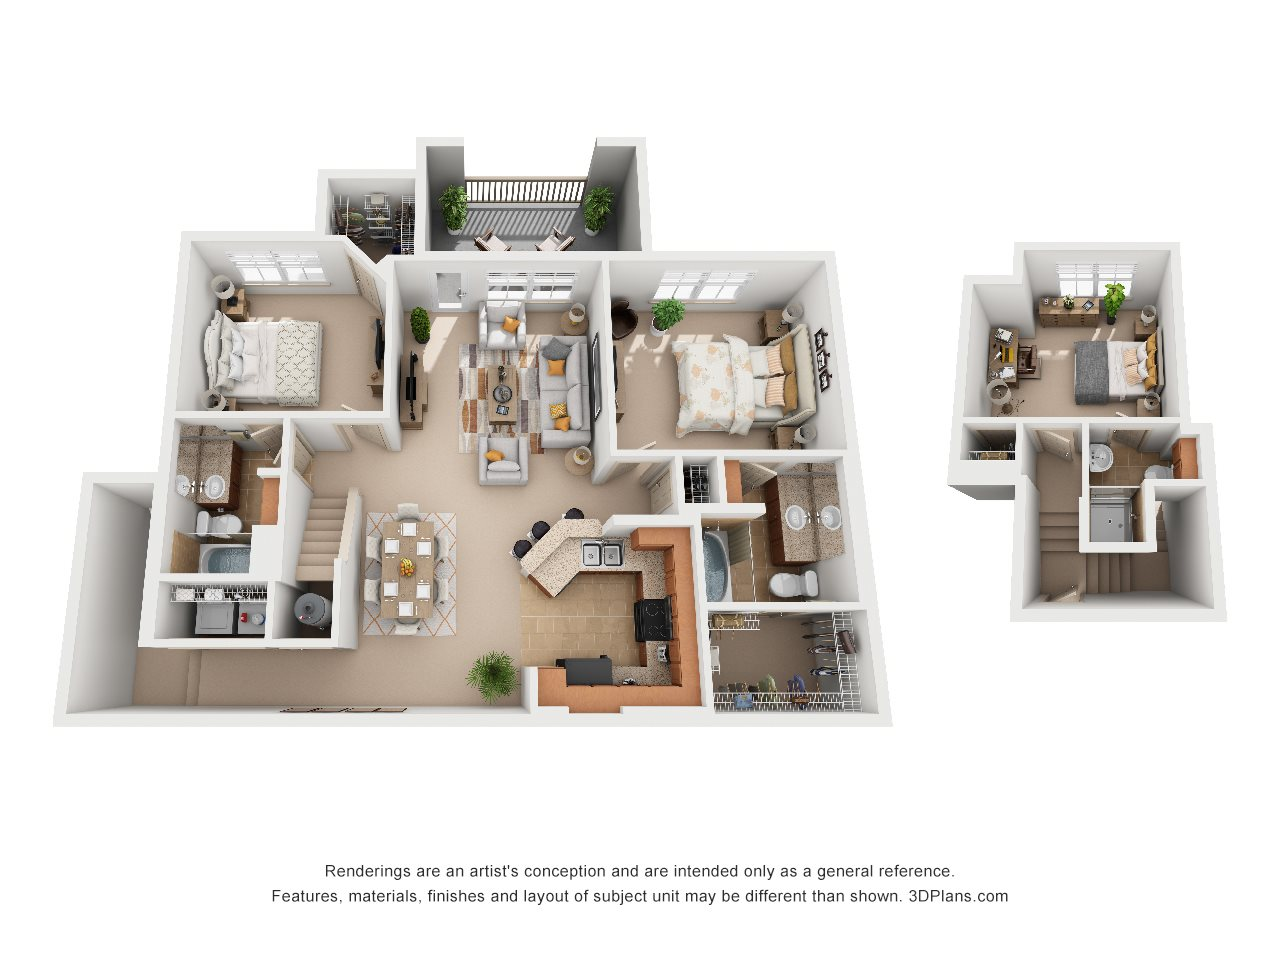 1 2 3 bedroom apartments in houston tx falls at - One bedroom apartments houston tx ...